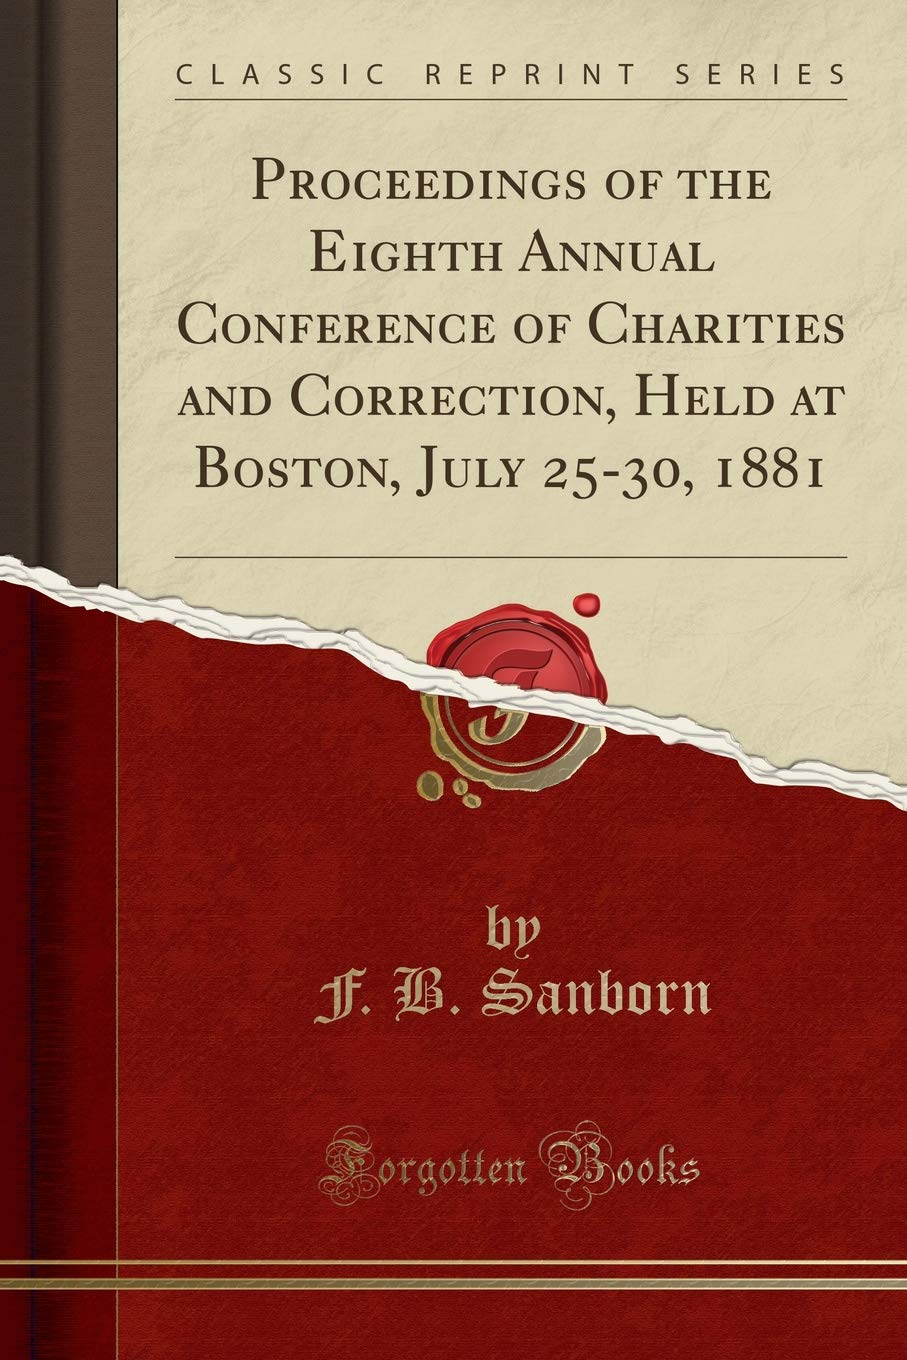 Proceedings of the Eighth Annual Conference of Charities and Correction, Held at Boston, July 25-30, 1881 (Classic Reprint) PDF